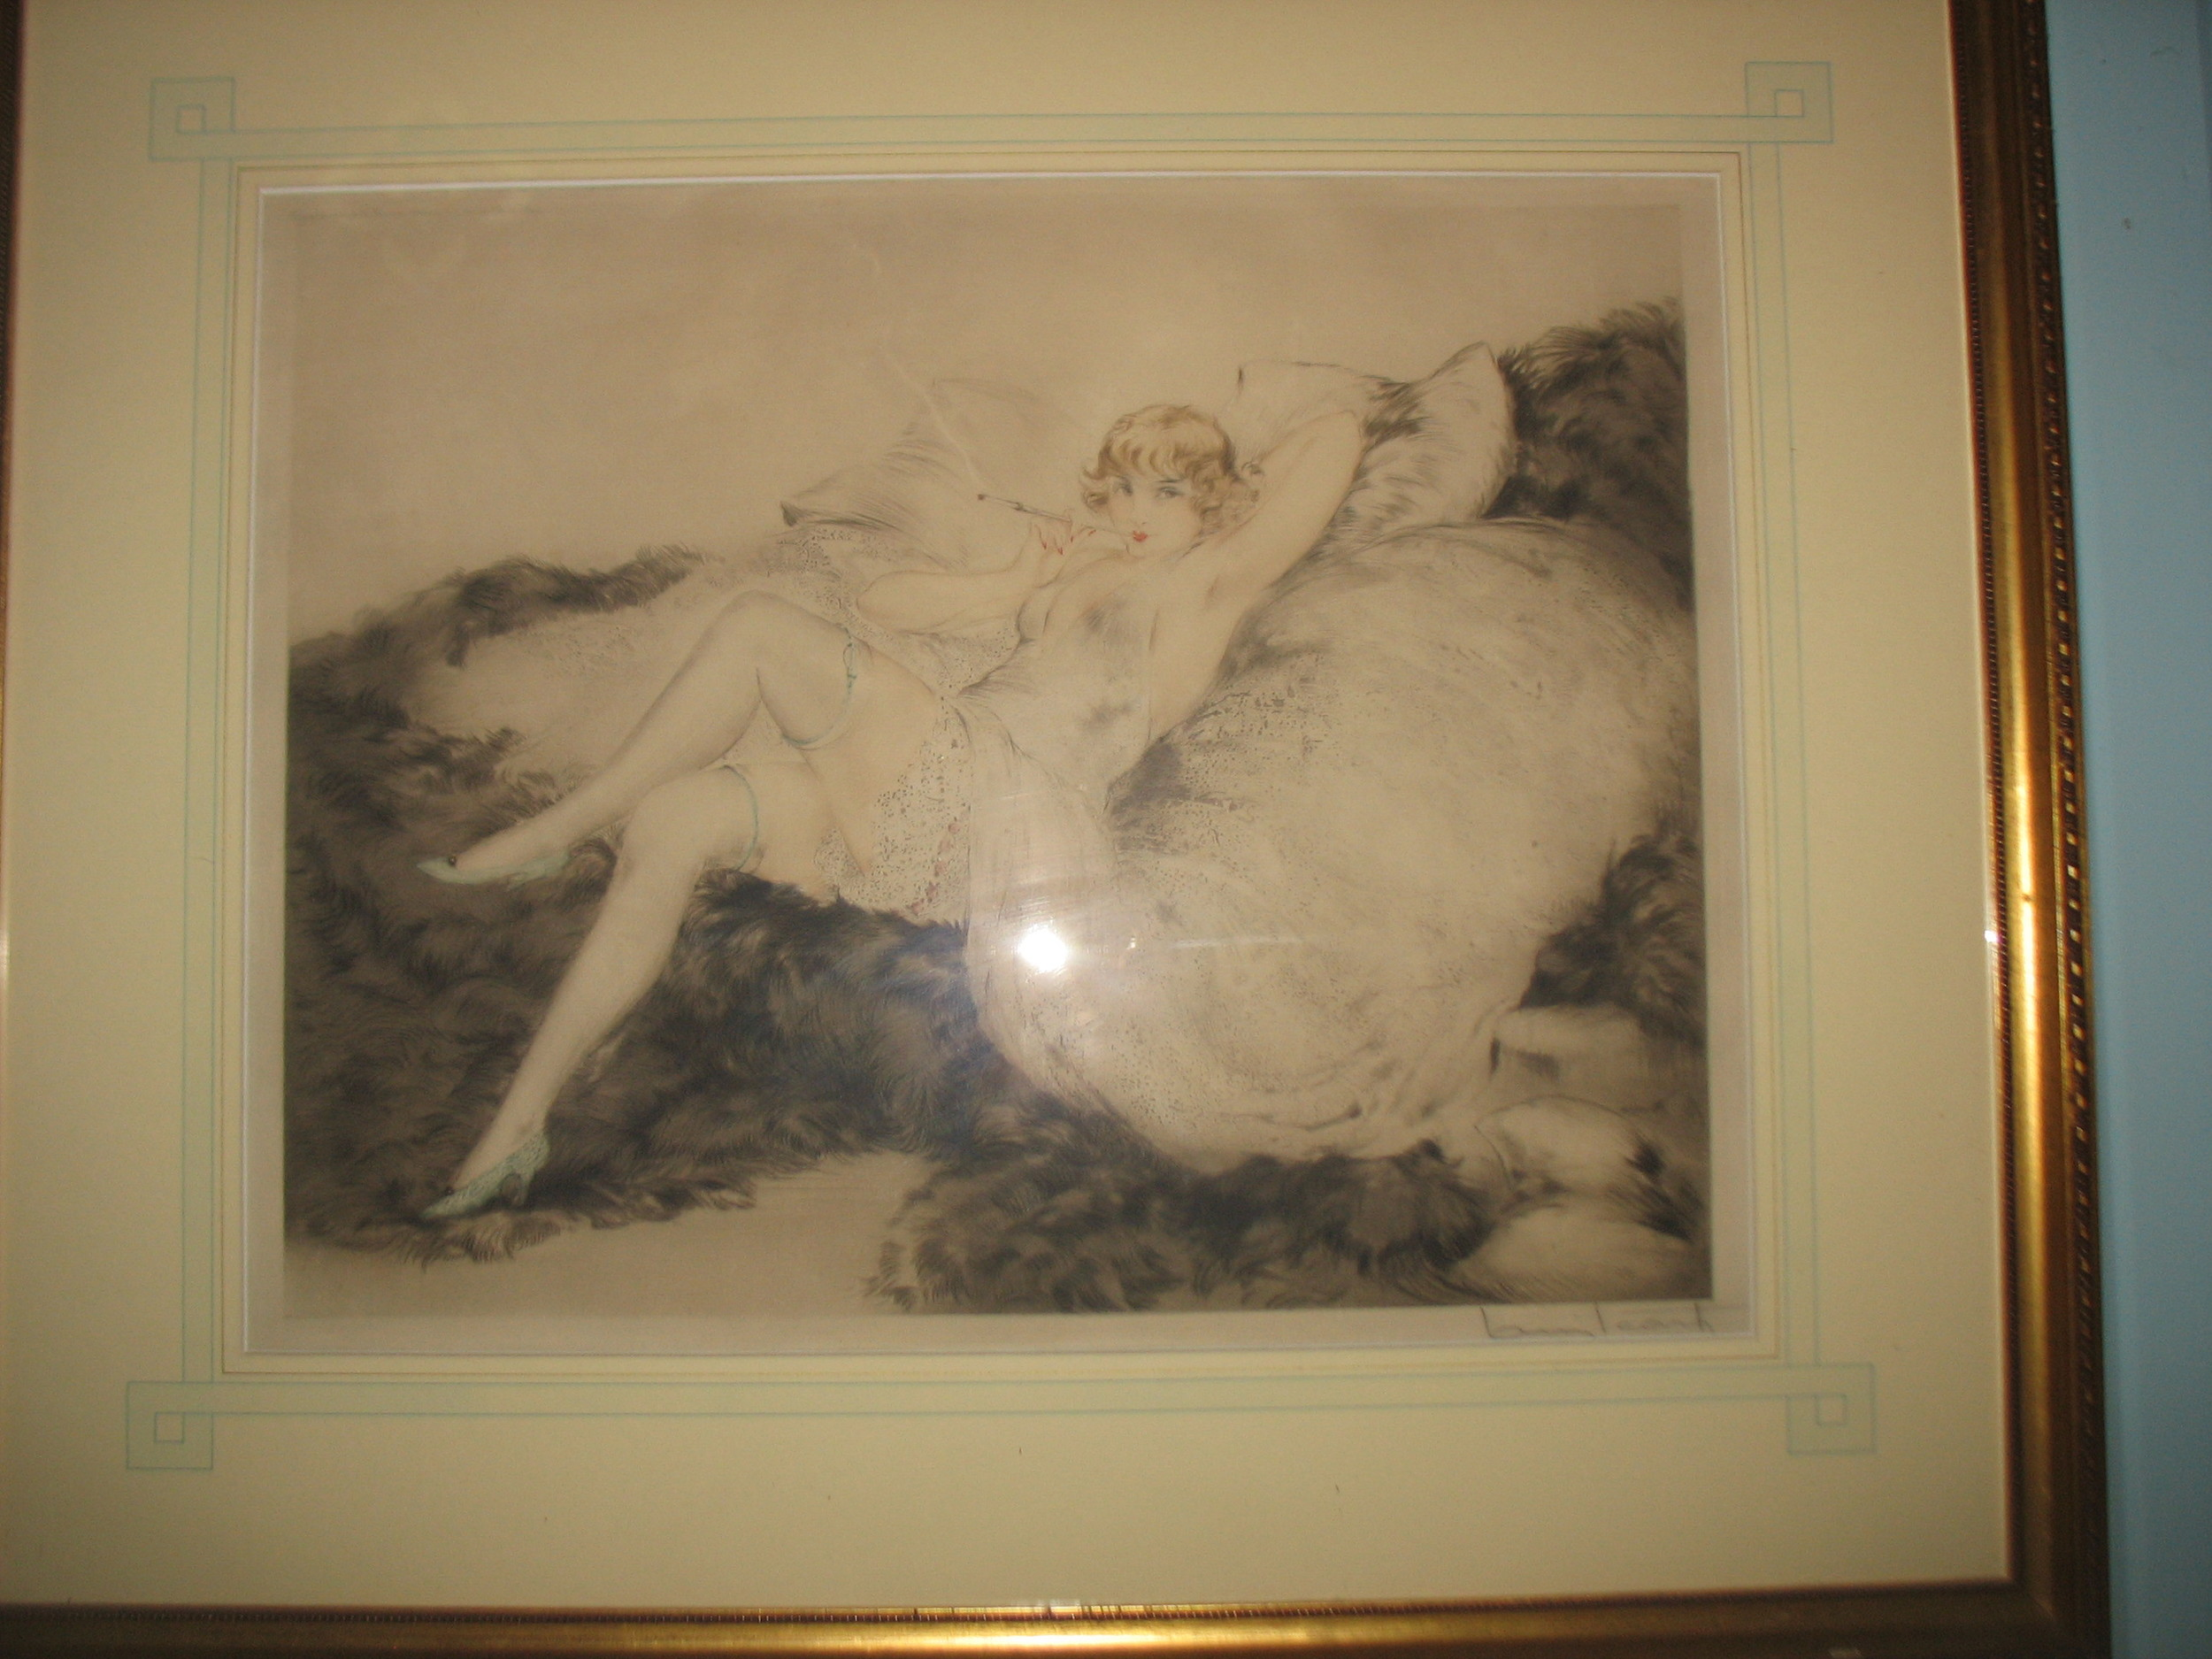 This is an original Icart signed 'Louis Icart'by the artist in pencil. The name of the piece is 'White Underwear' done in 1925. Measurements are 29 inches X 25 inches with frame.     Price upon request